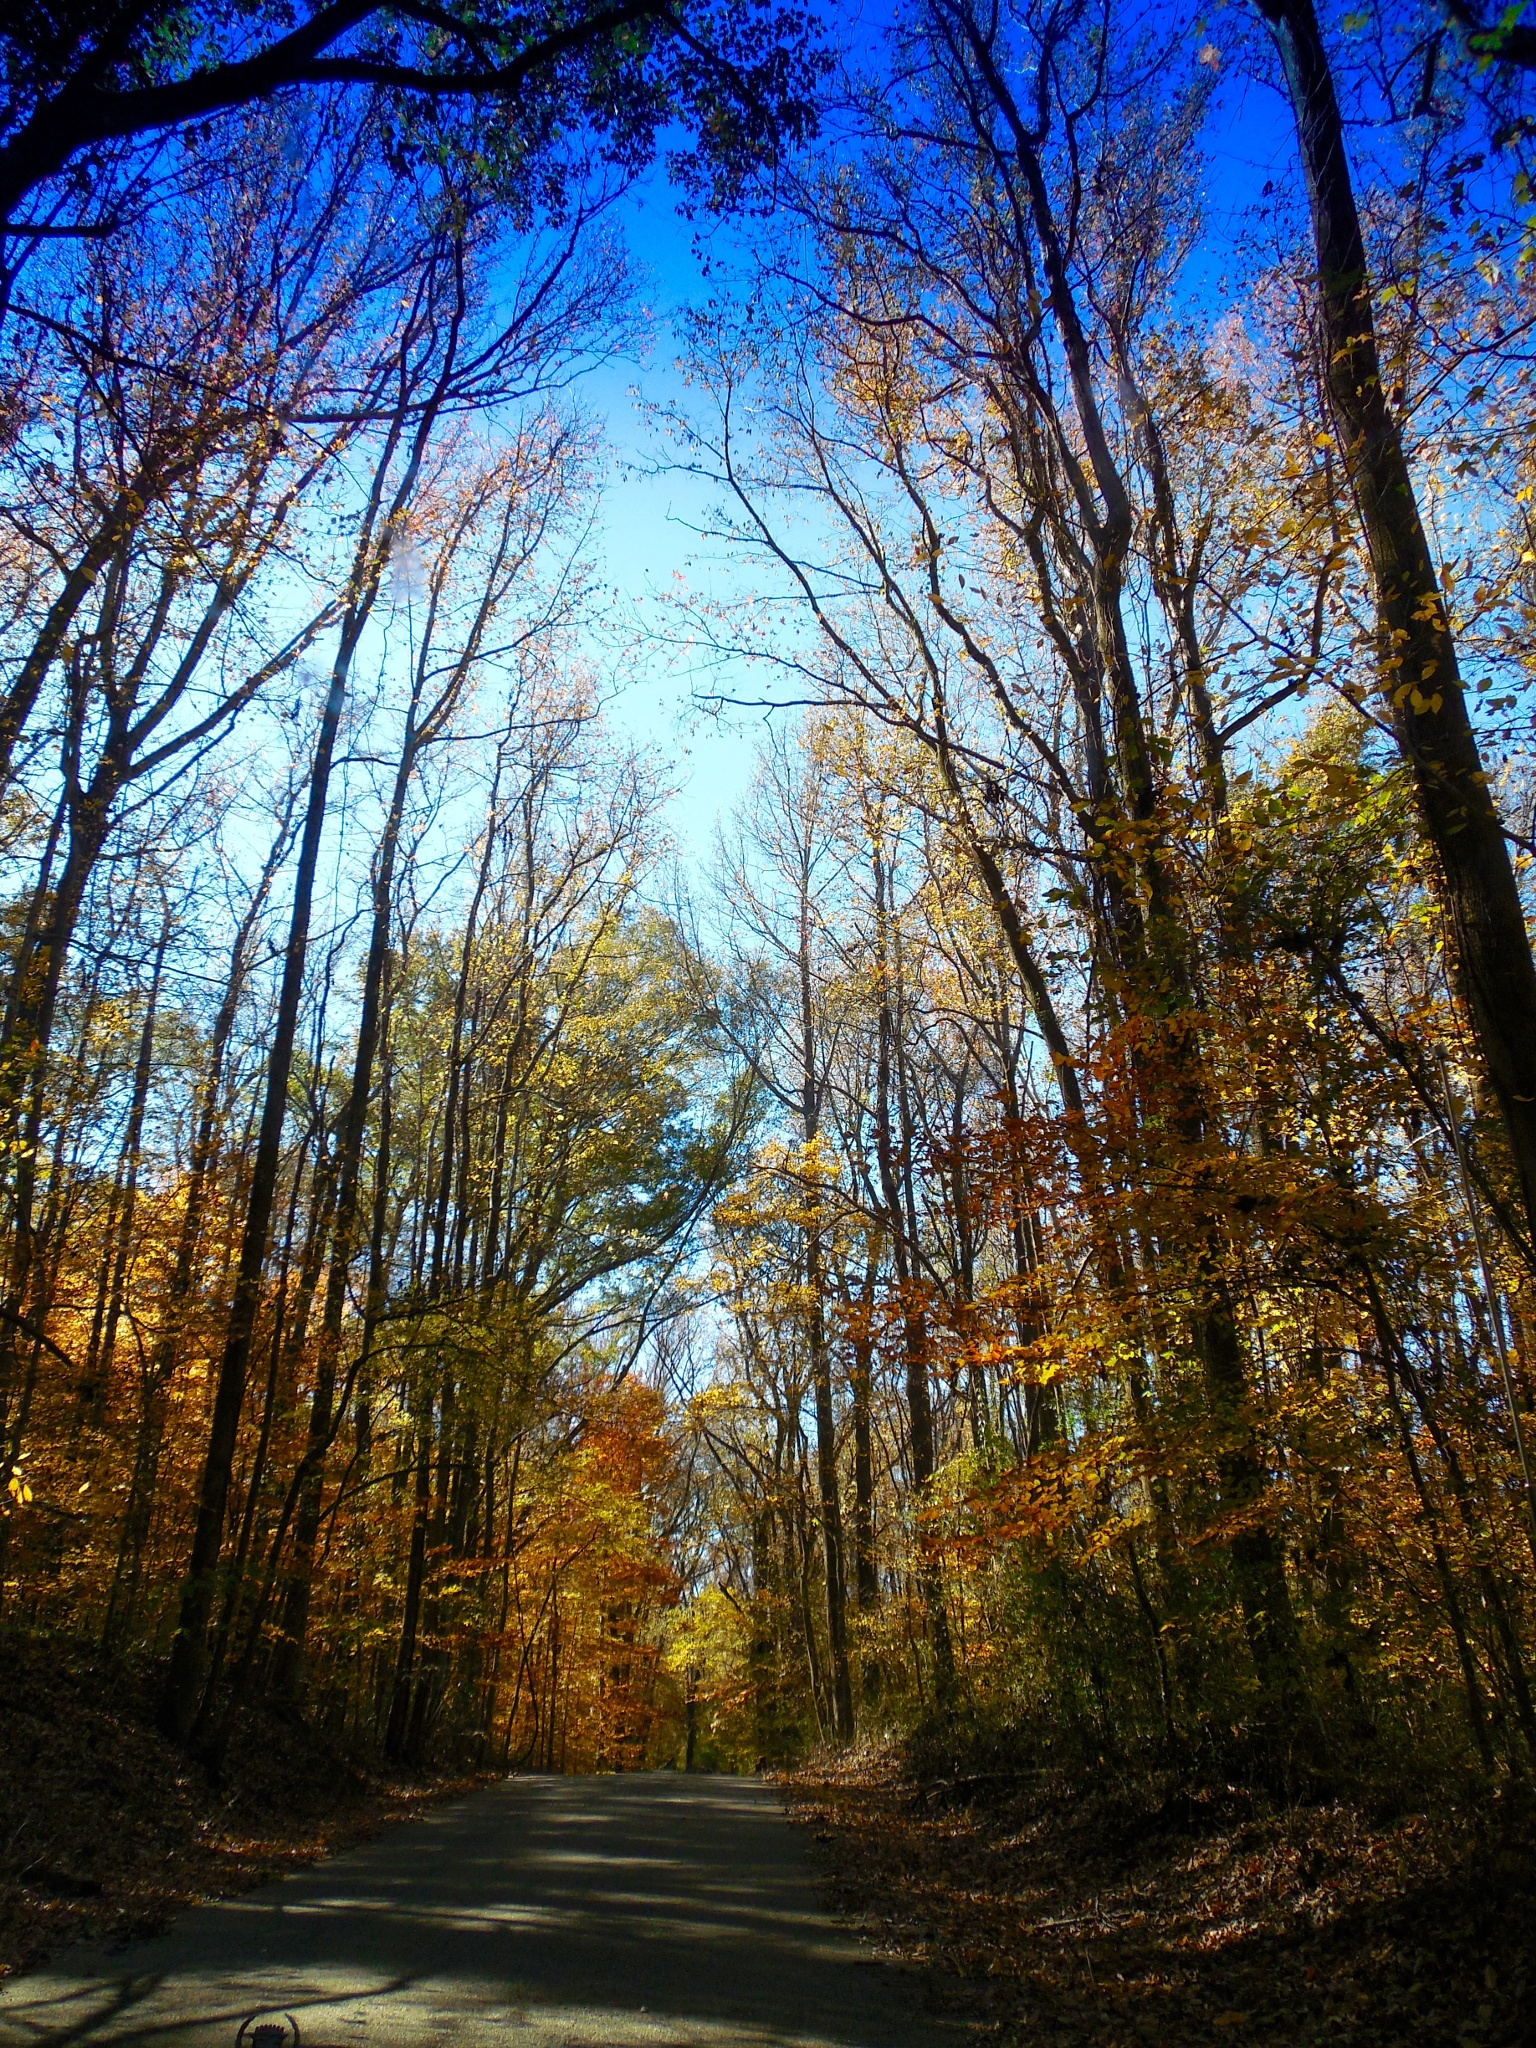 Meeman-Shelby Forest State Park, Millington, TN by marcchia